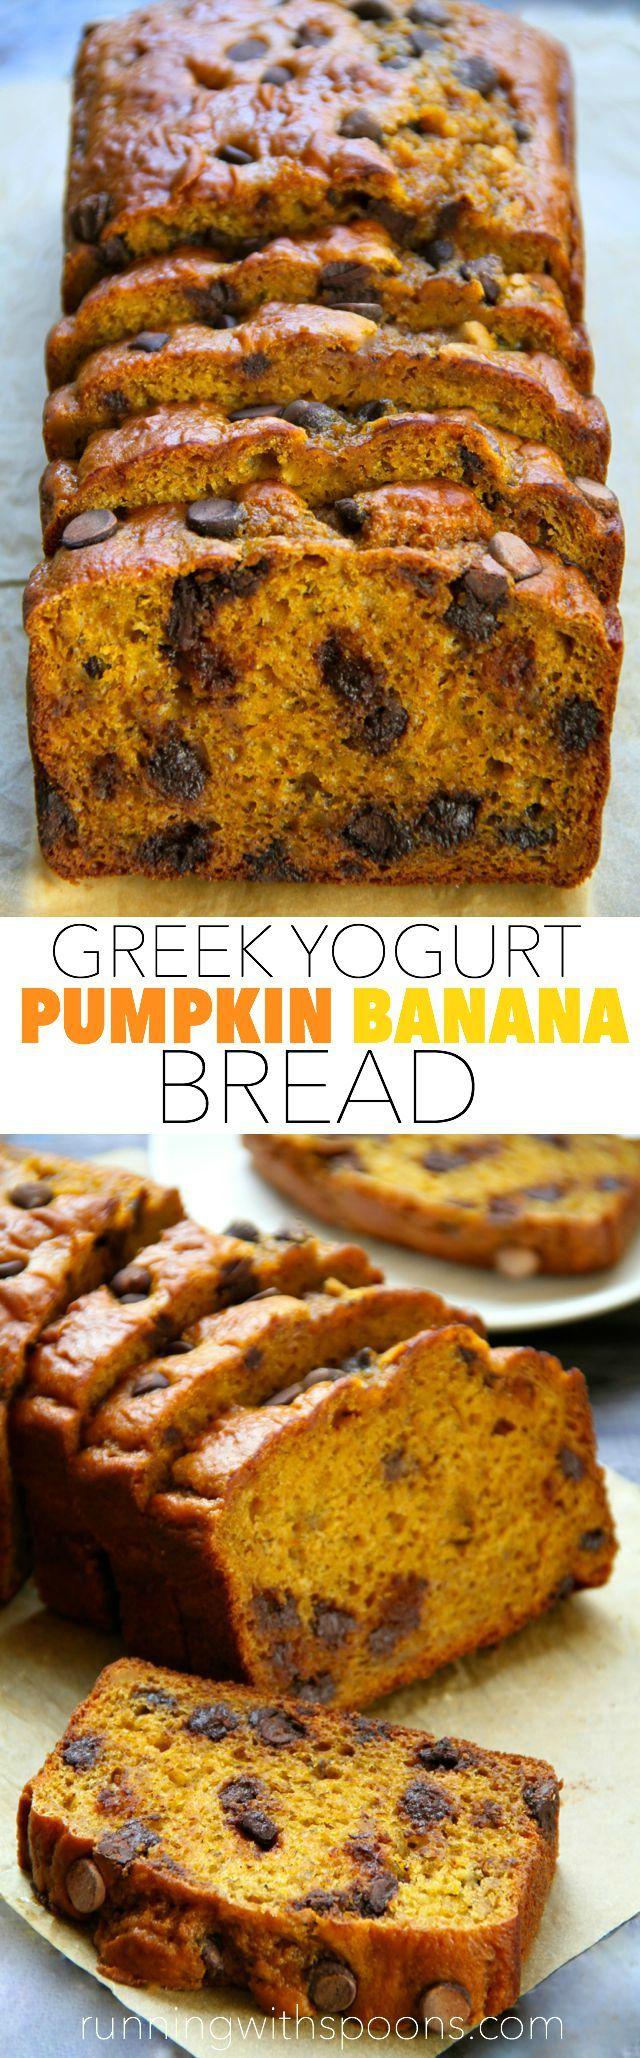 Greek Yogurt Pumpkin Banana Bread -- made without butter or oil, but so soft and tender that you'd never be able to tell! A healthy and delicious snack! || runningwithspoons.com #pumpkin #banana #fall